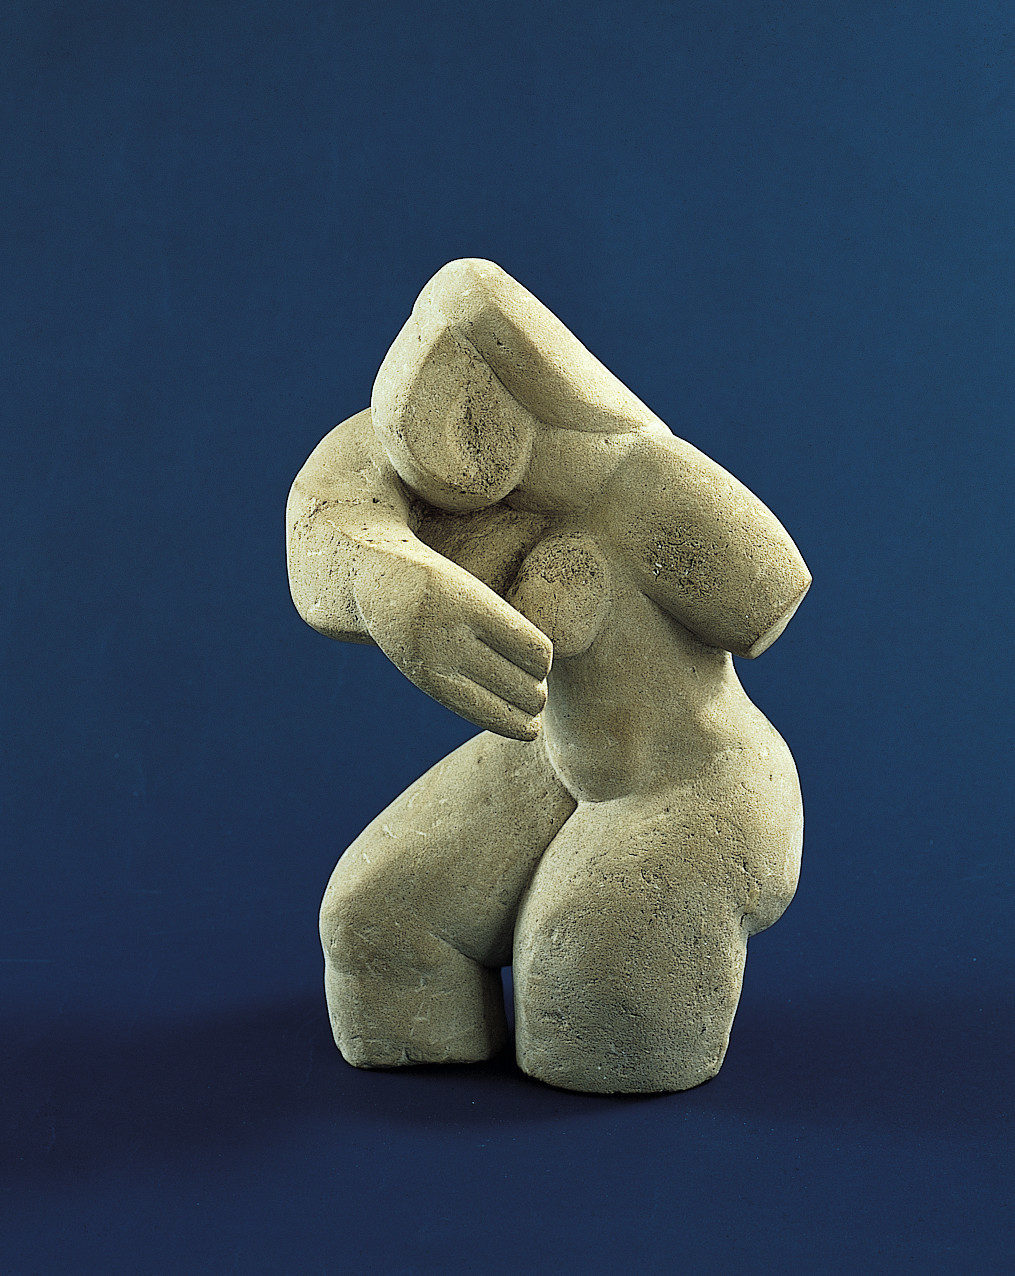 """Suzanne,"" a limestone sculpture by Alexander Archipenko — part of an exhibition about dealer Galka Scheyer at the Norton Simon."